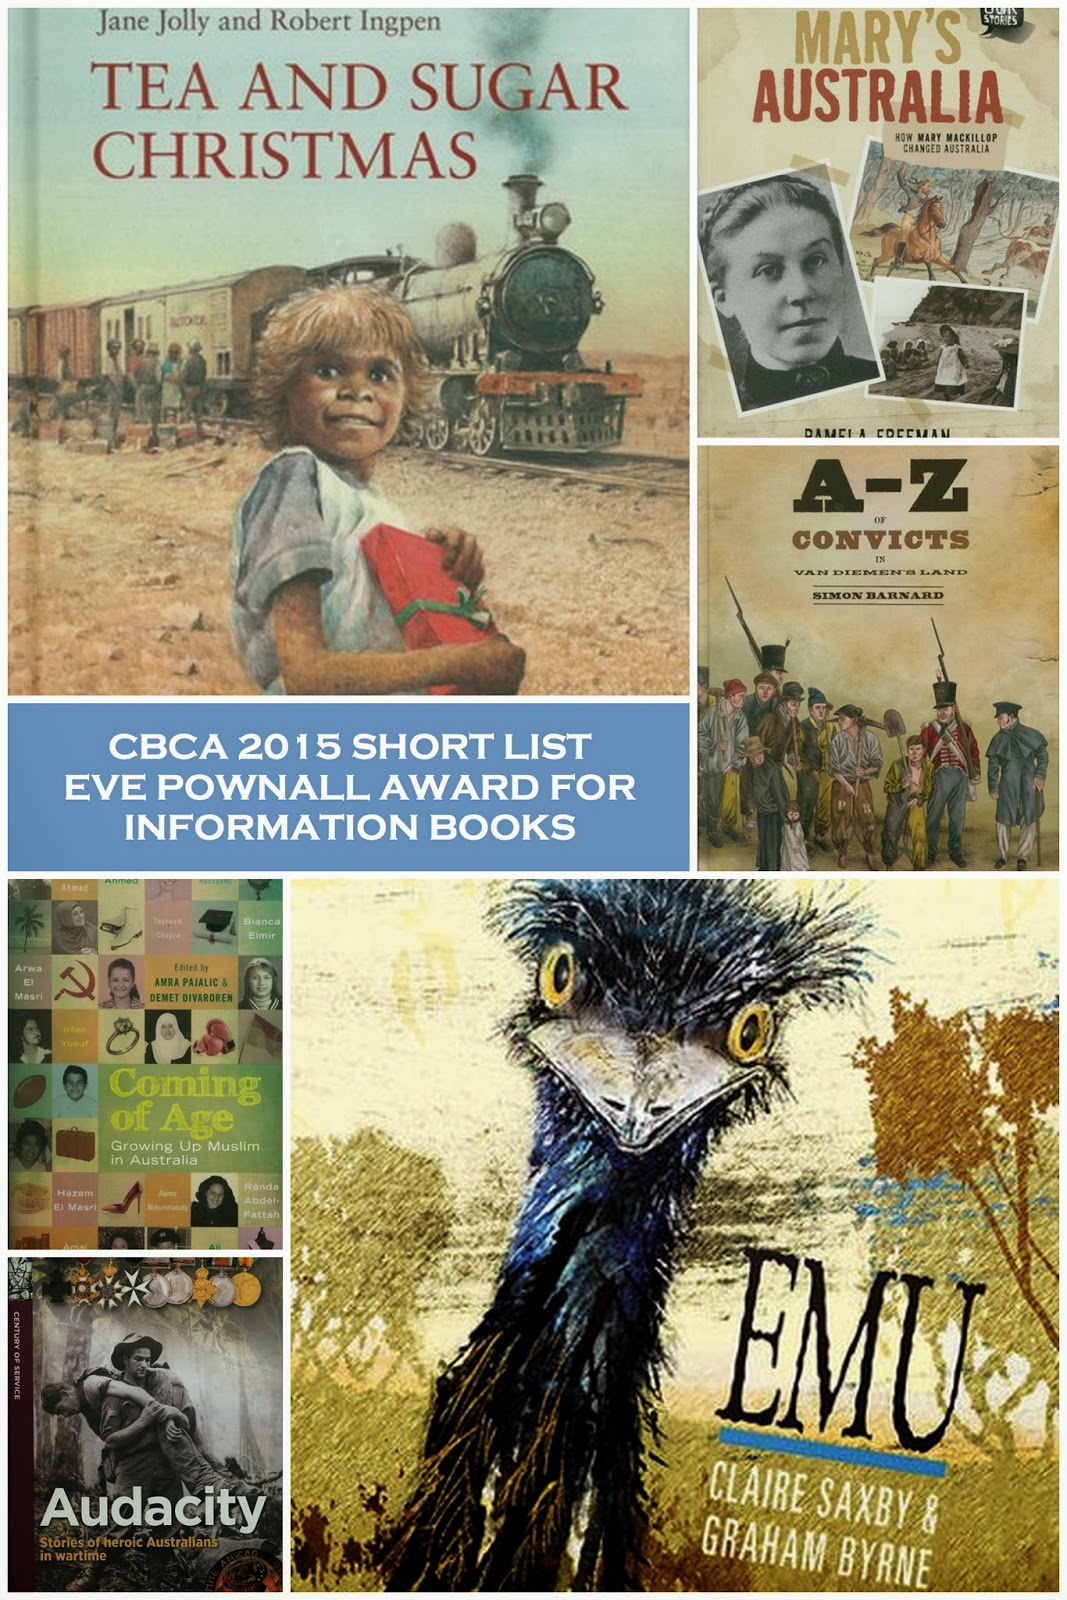 The 2015 Short List for the CBCA Eve Pownall Award for Information Books